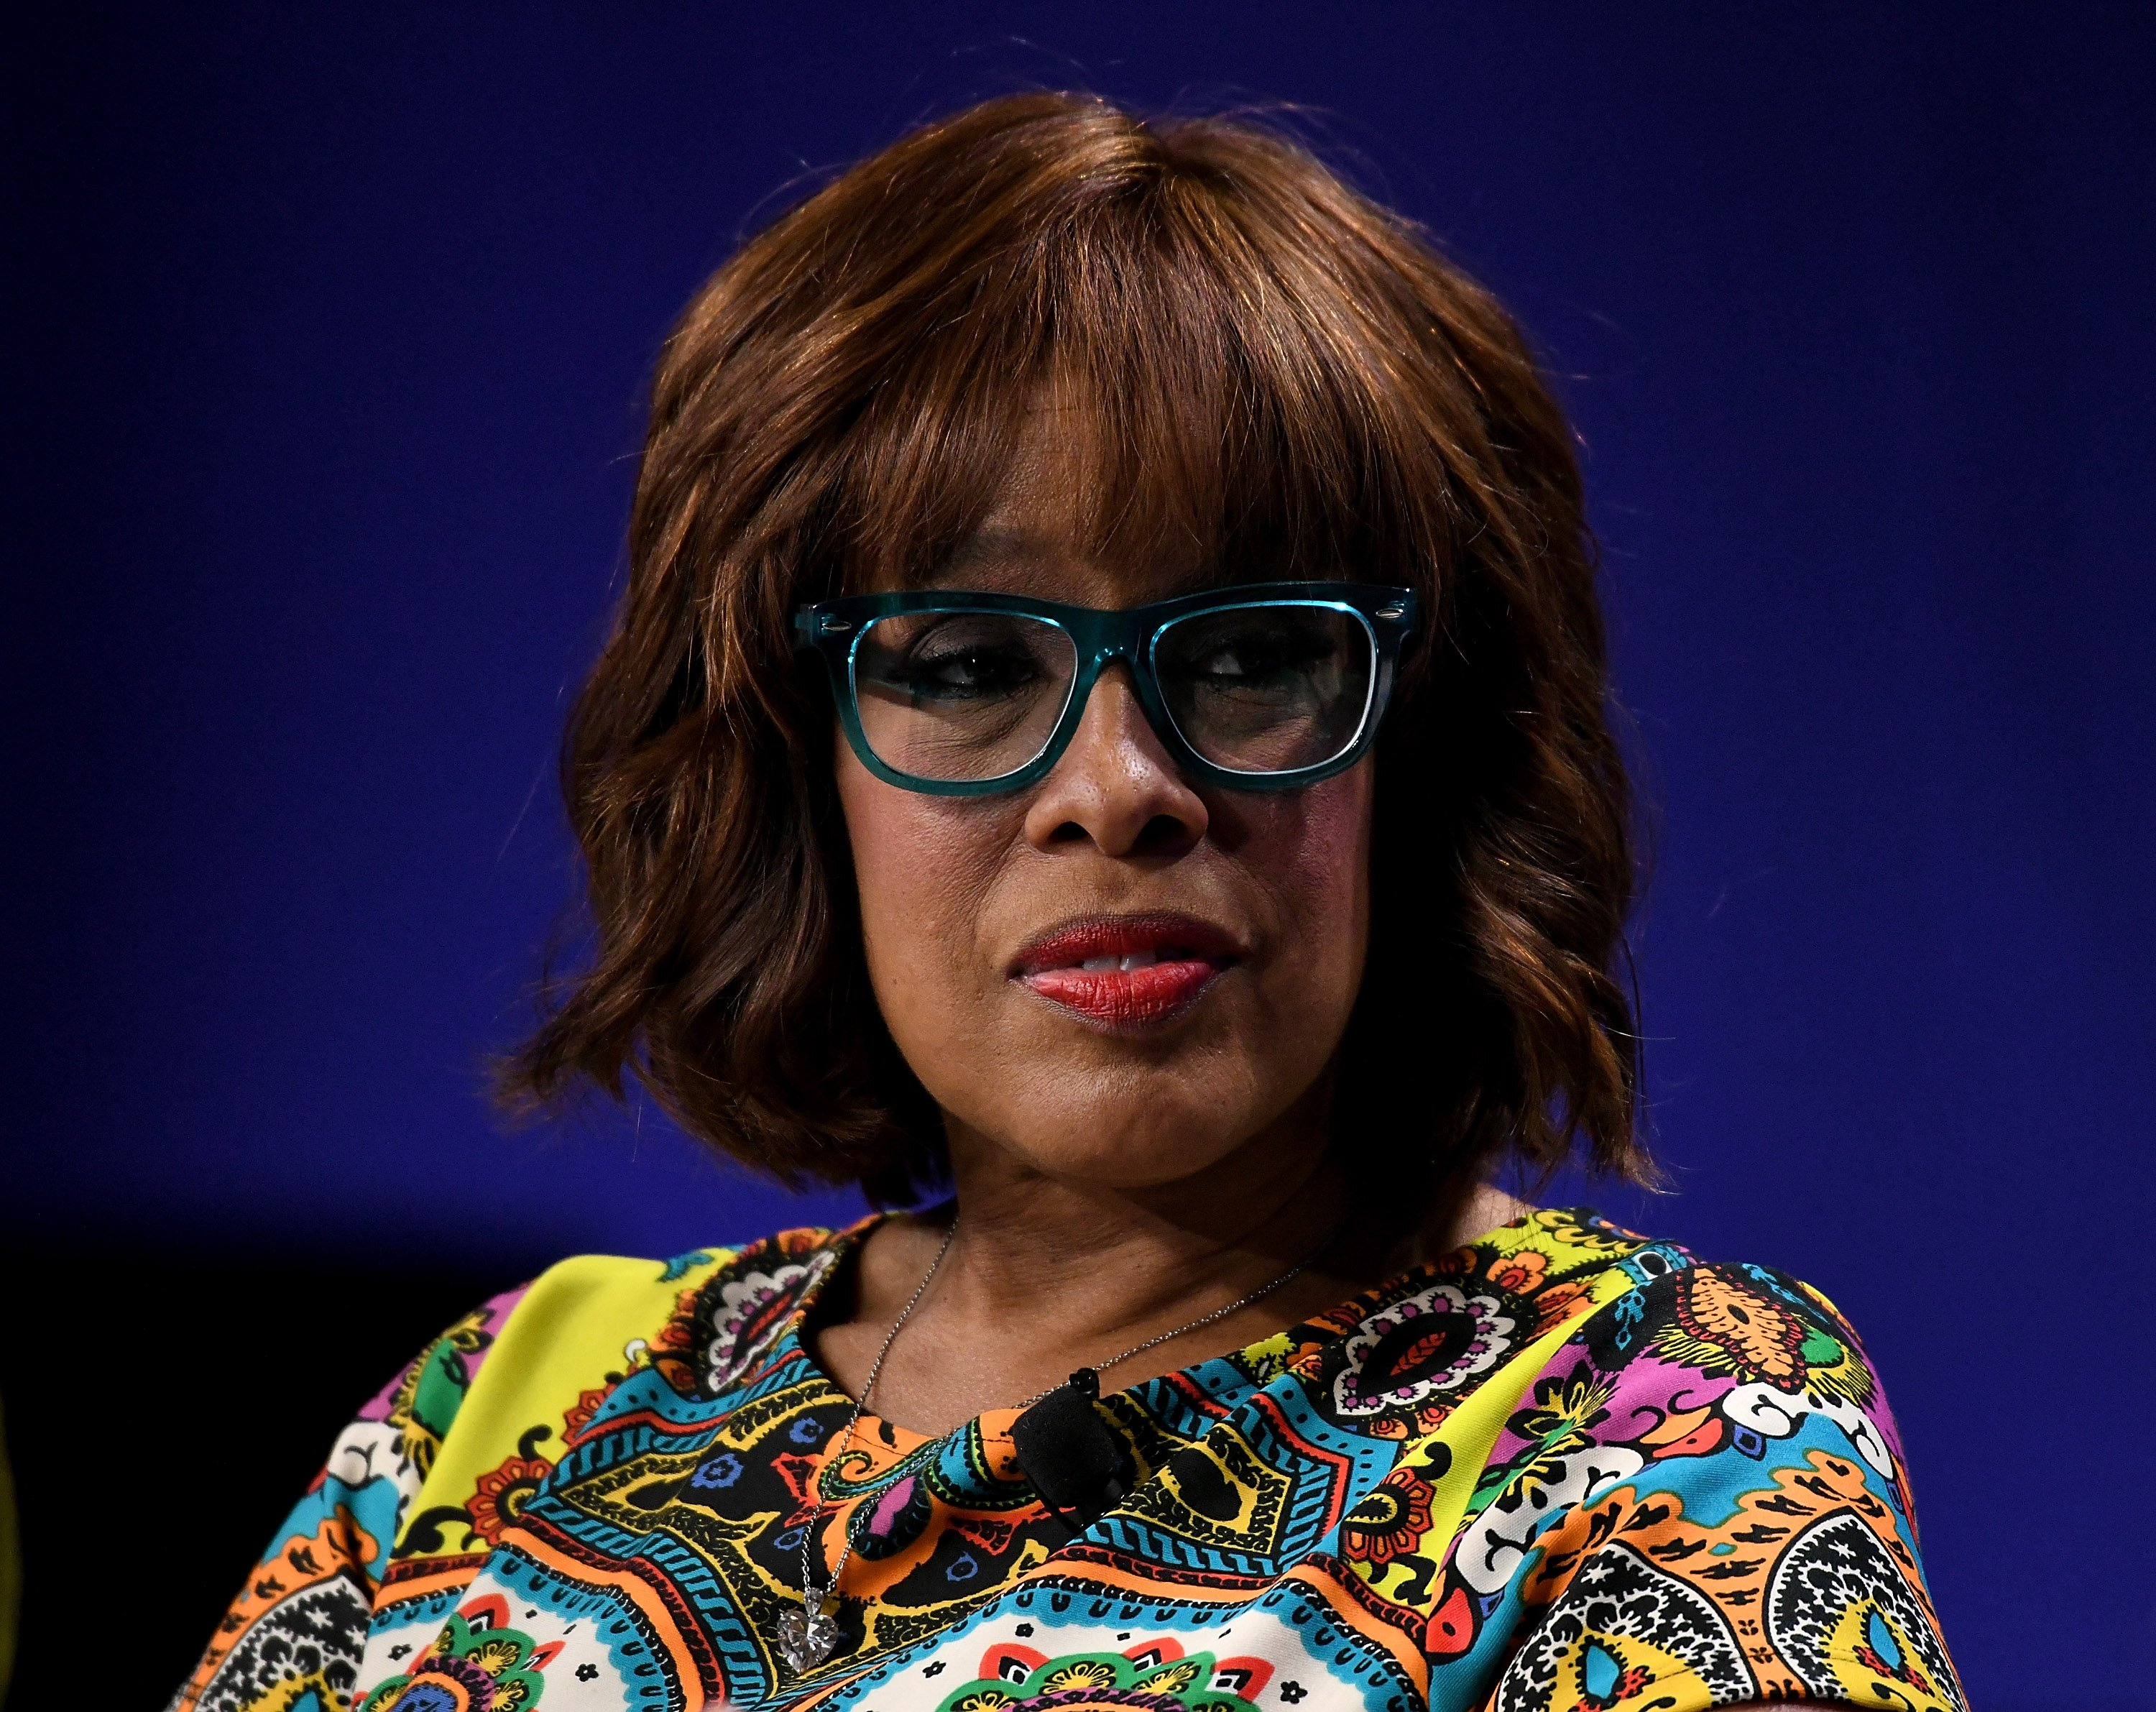 Gayle King, Co-Host, CBS This Morning, participates in a panel discussion during the annual Milken Institute Global Conference at The Beverly Hilton Hotel on April 29, 2019 | Photo: GettyImages